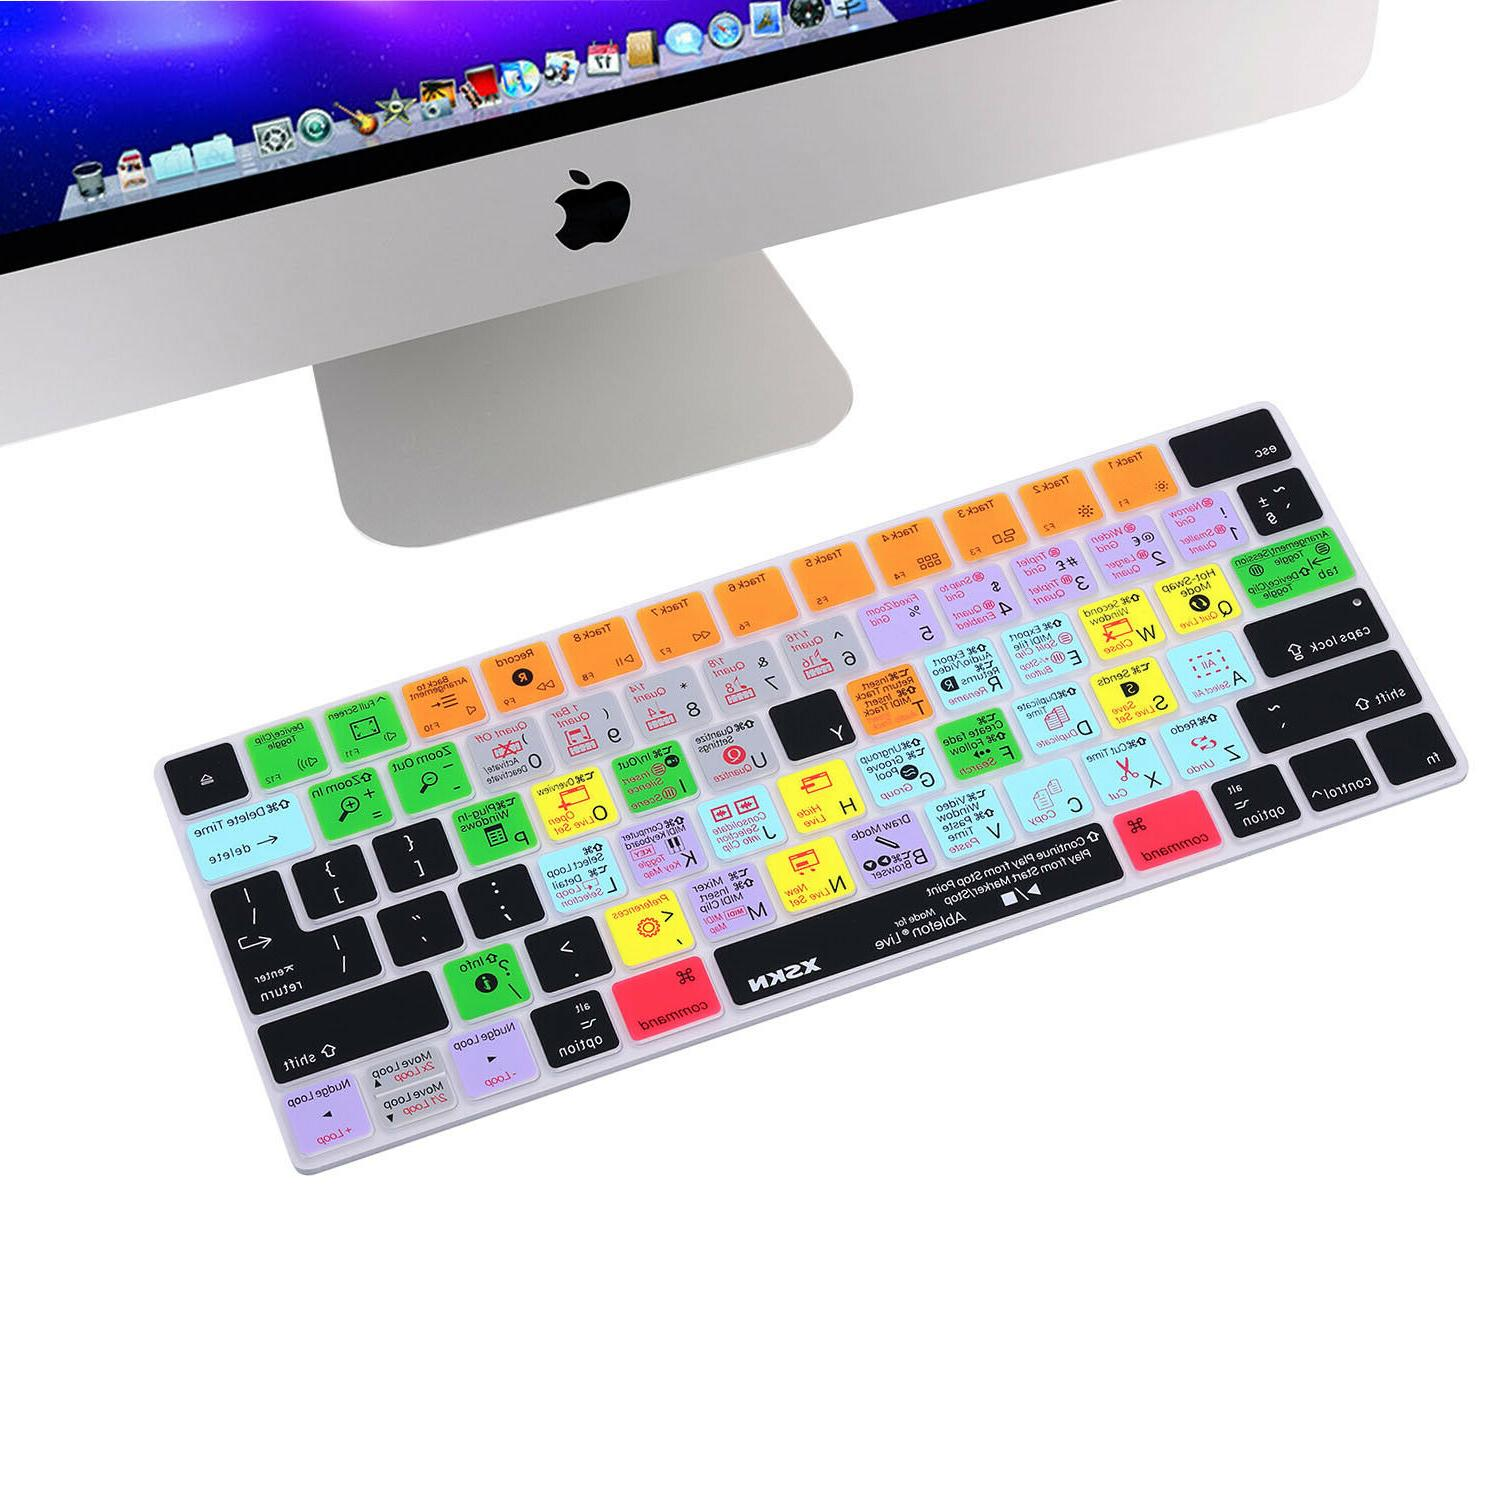 ableton live shortcut keyboard cover for apple